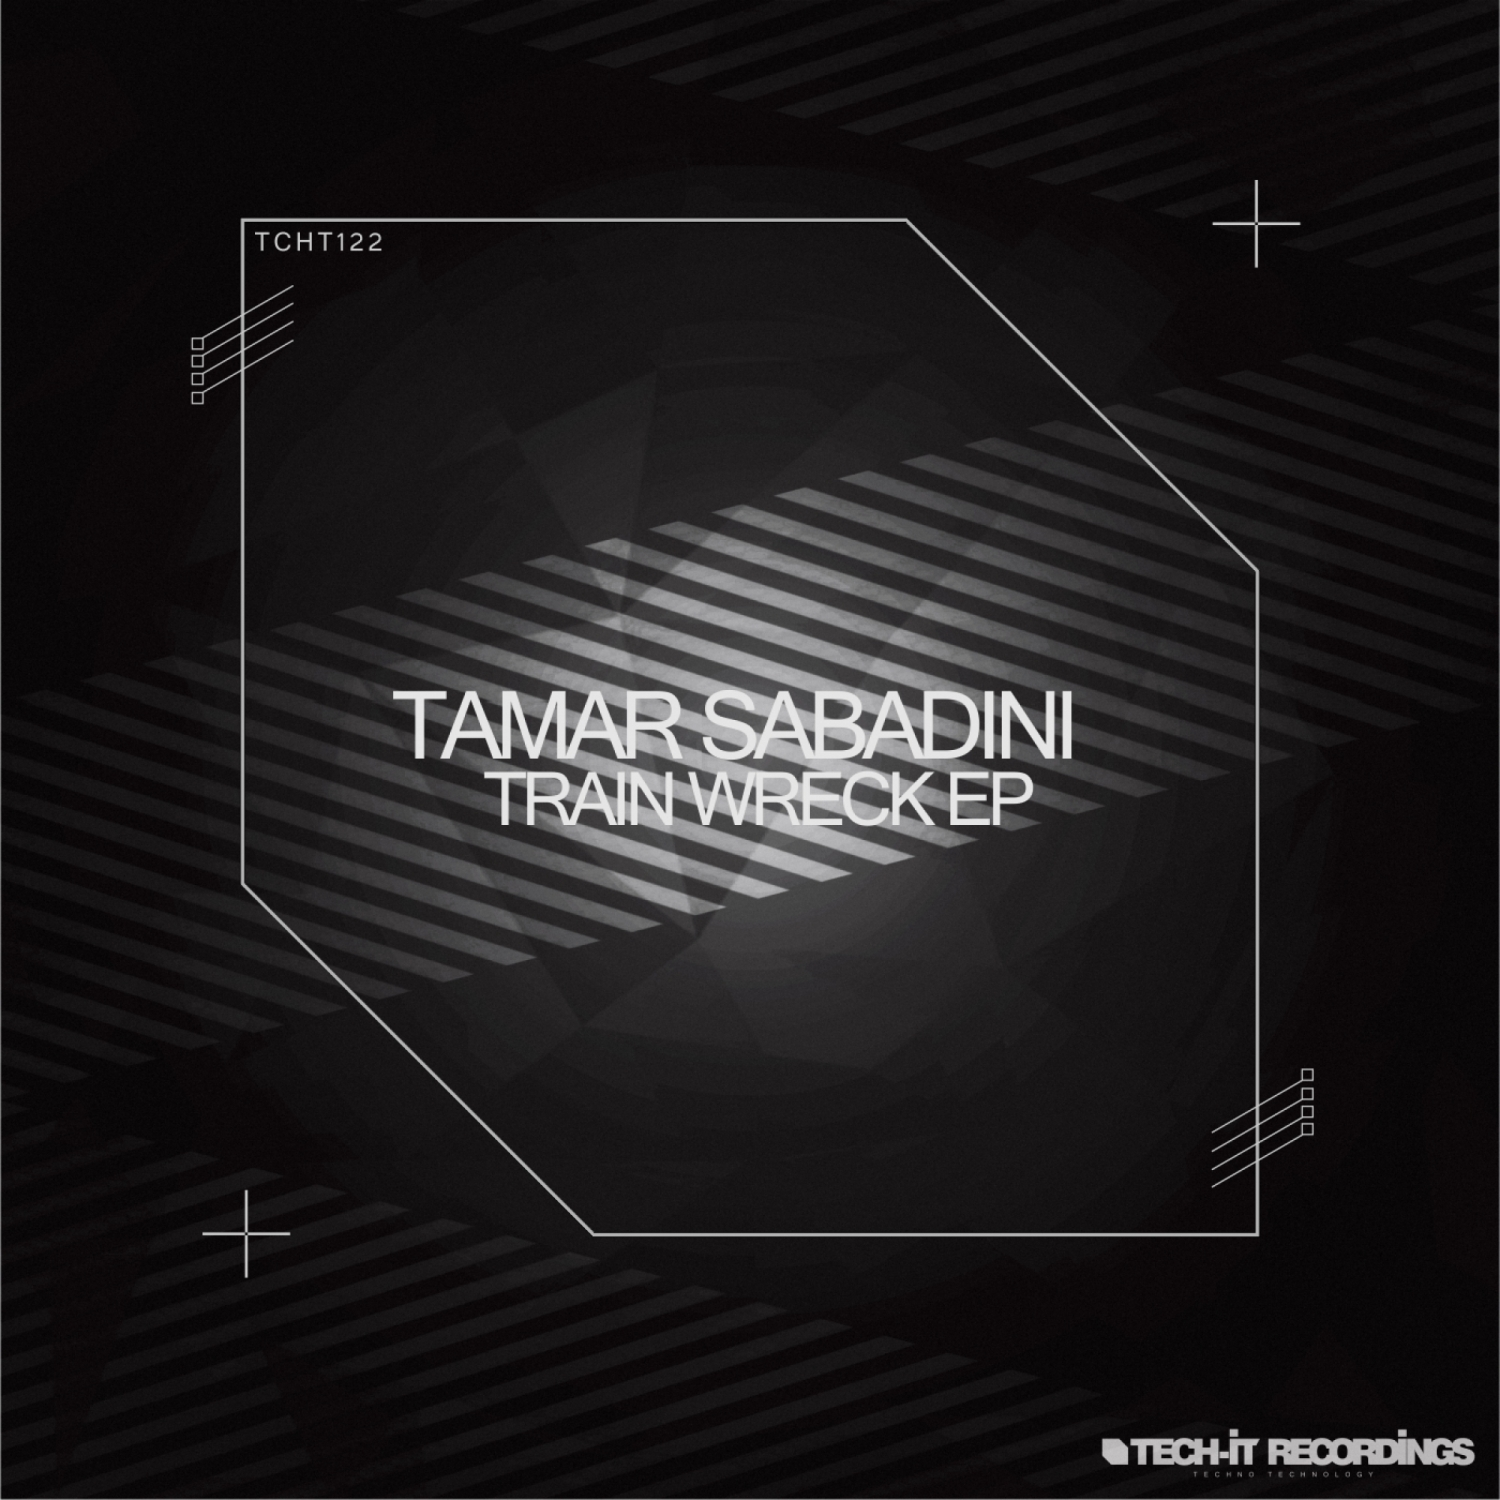 Tamar Sabadini - Train Wreck (Original Mix)